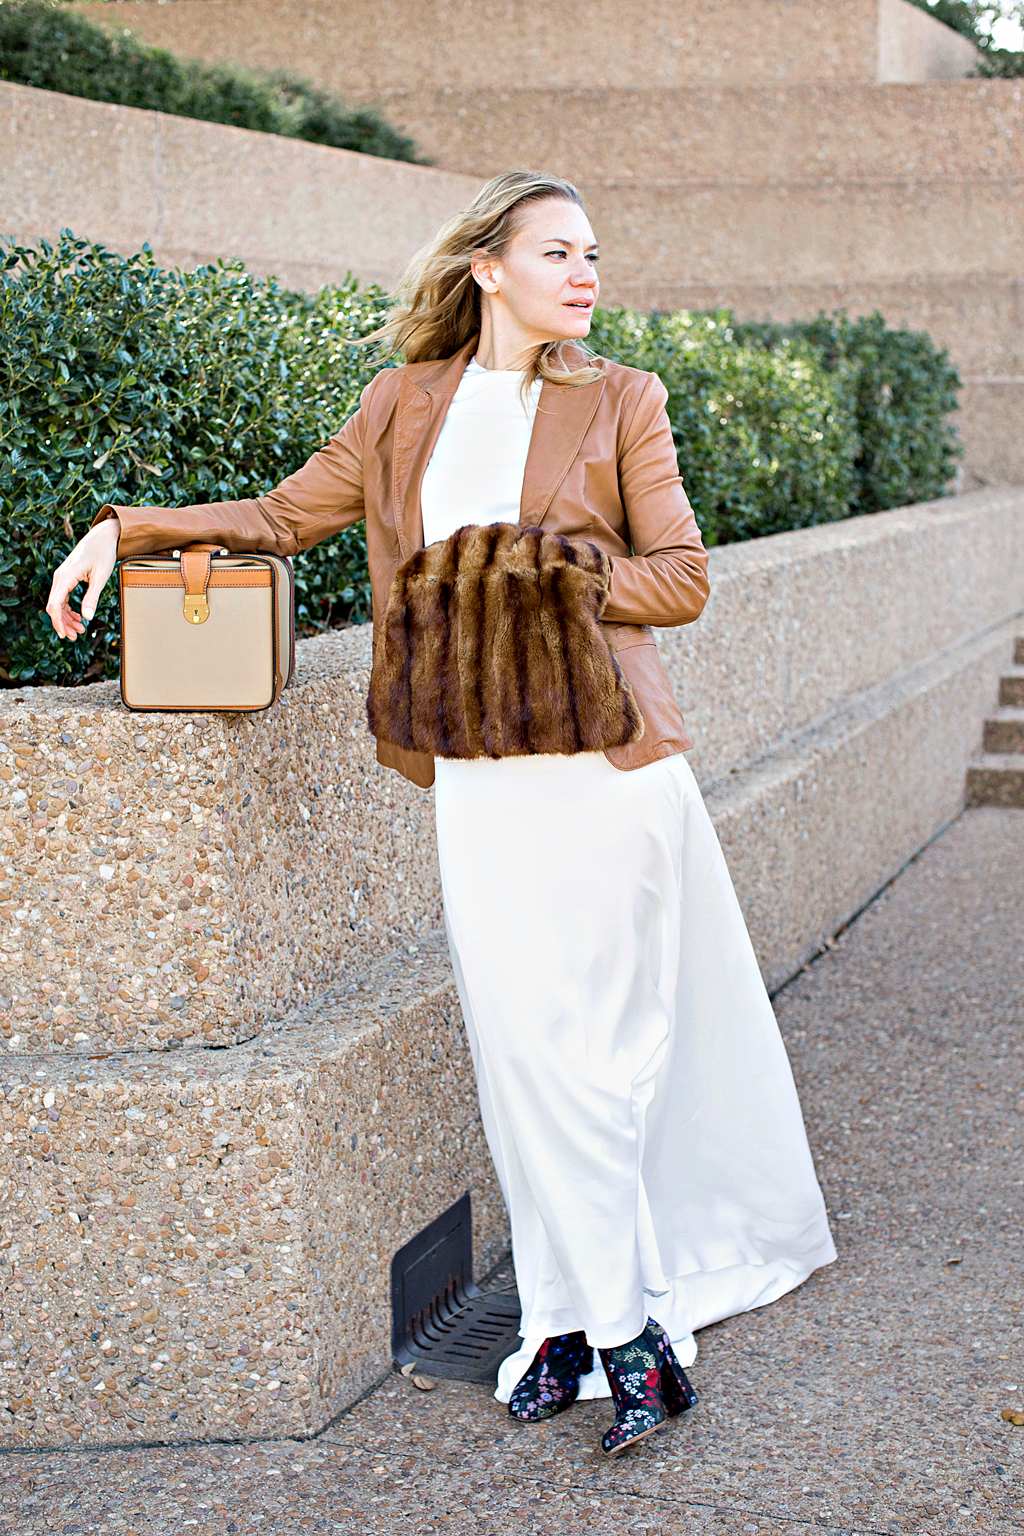 Investment Piece, non wedding, fashion blogger, Valentino, Gucci, train case, mink, Megan Weaver, CA, TX, high fashion